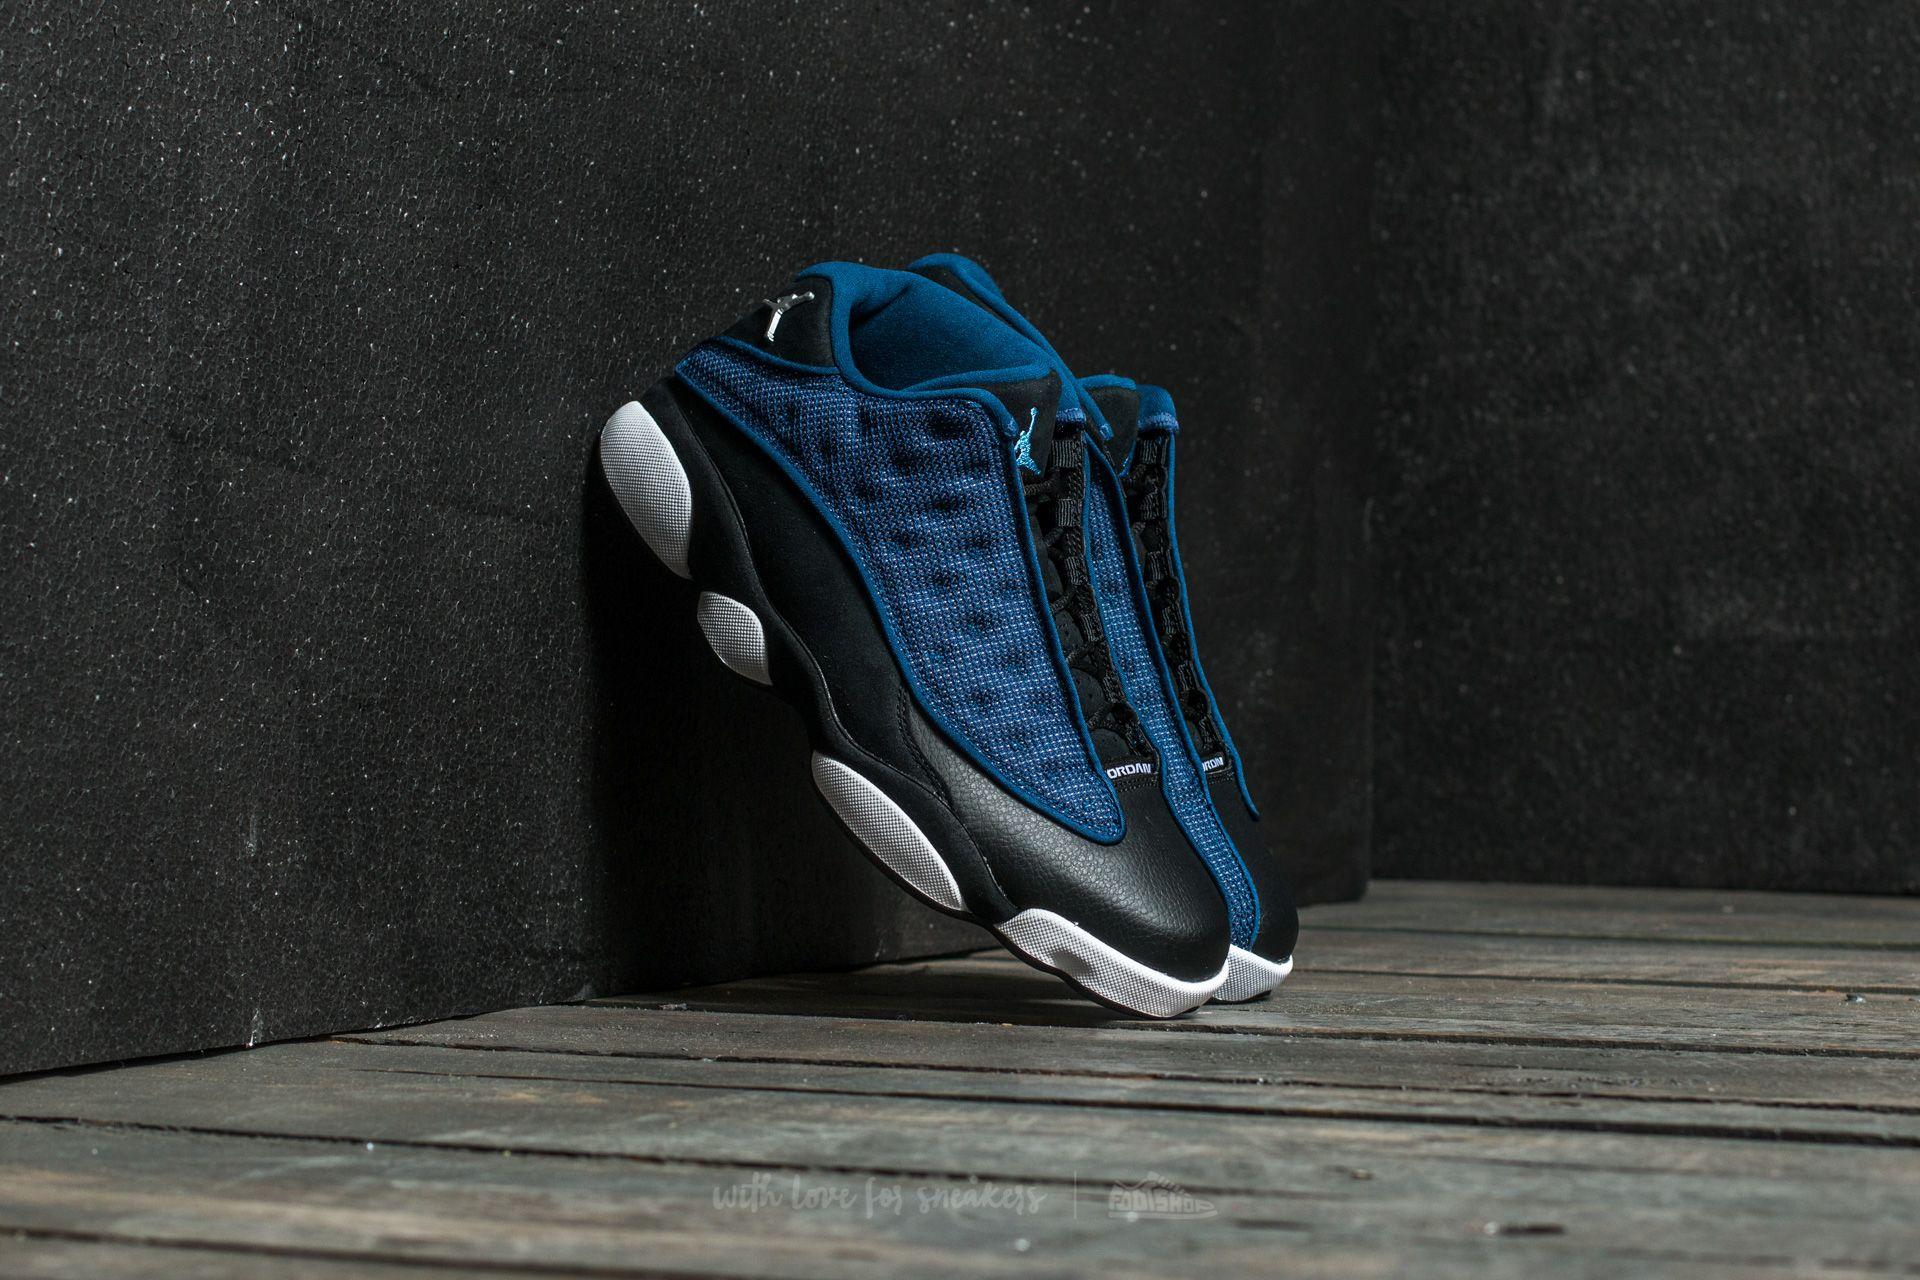 Air Jordan 13 Retro Low Brave Blue/ Metallic Silver